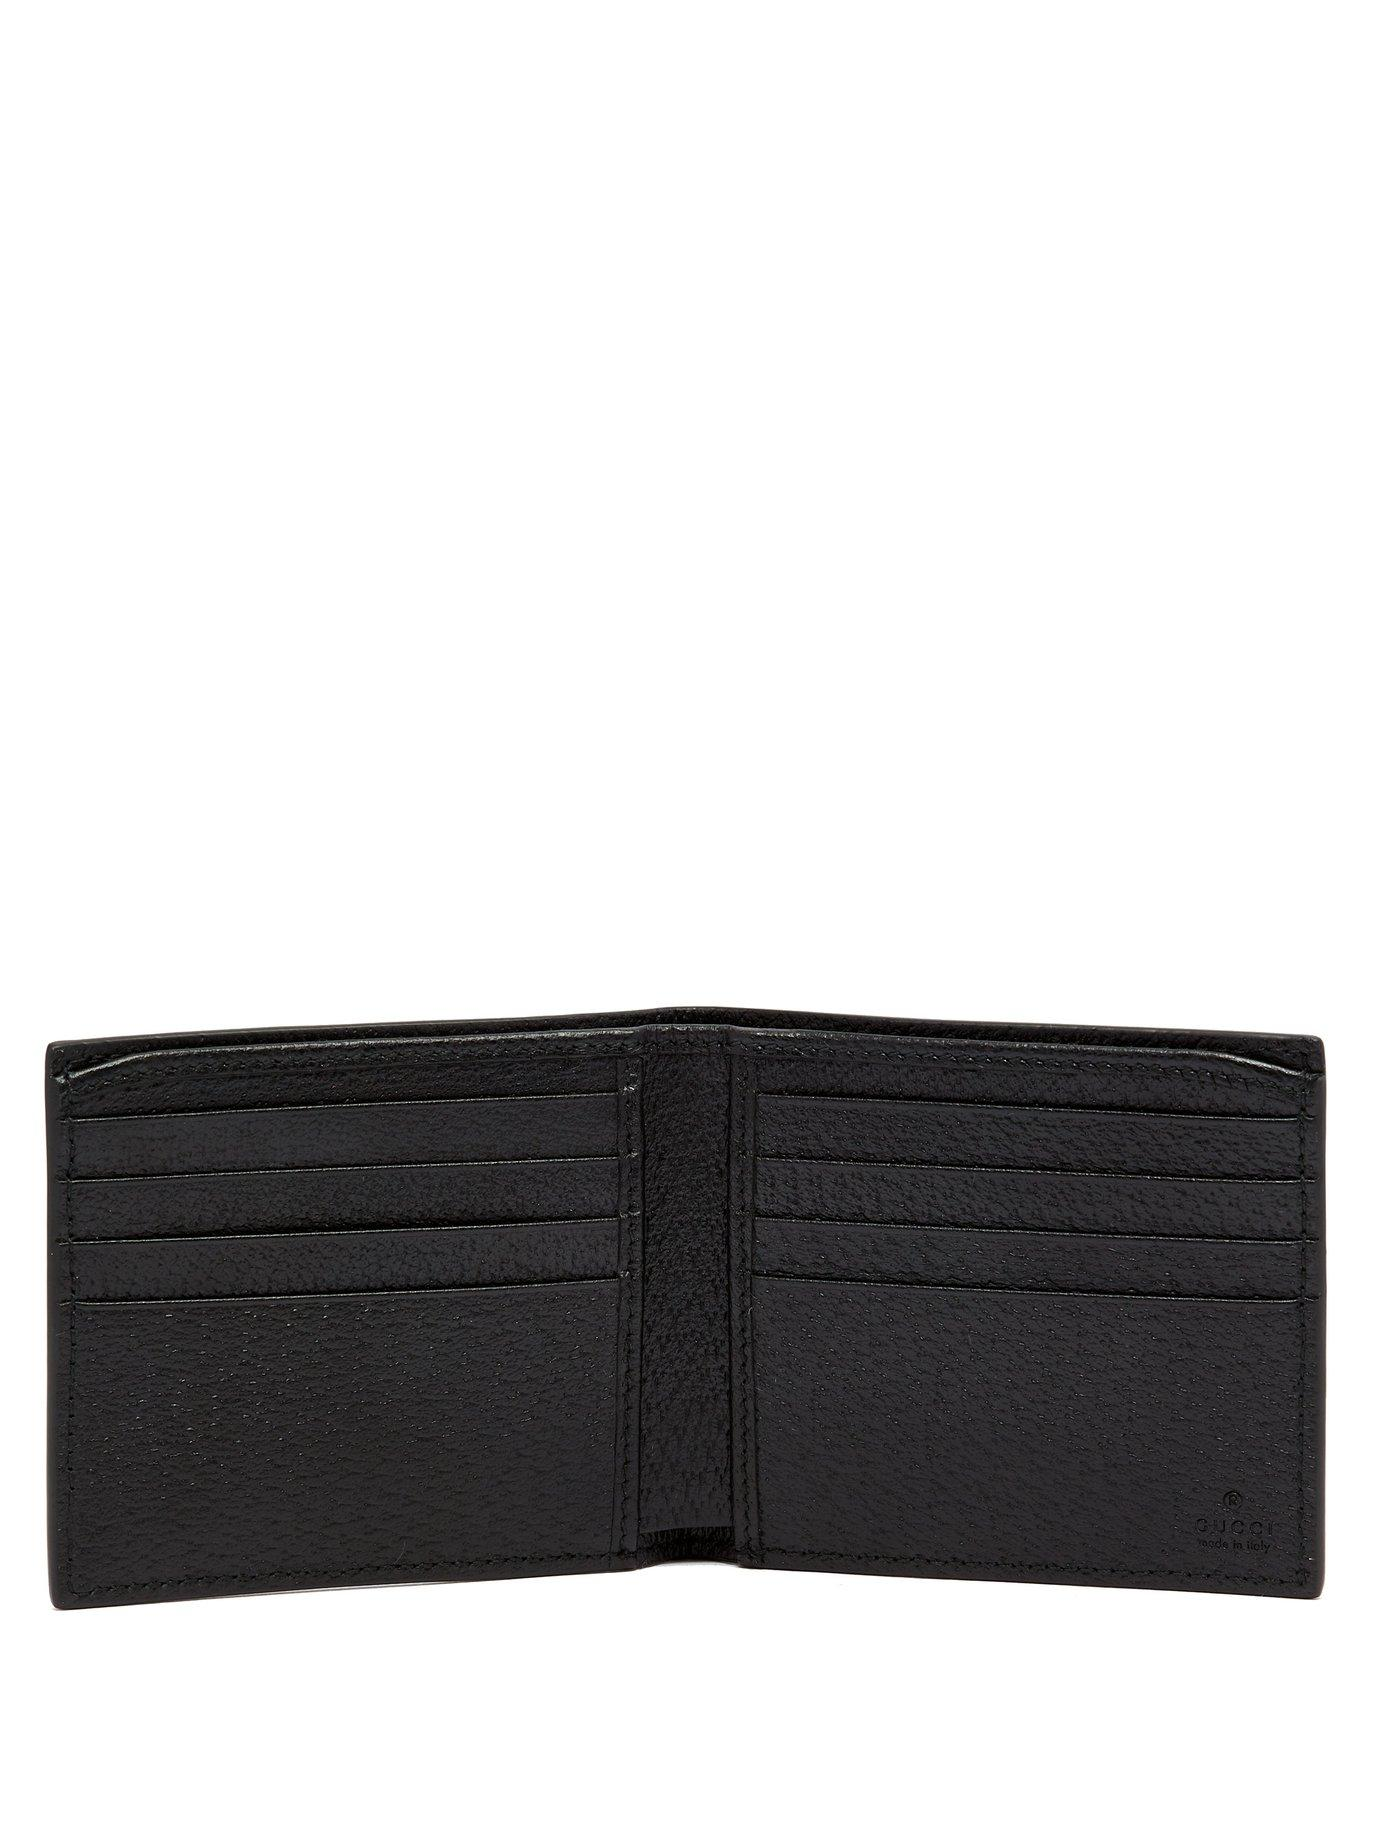 d451c4f381ae32 Gucci Gg Marmont Grained Leather Bi Fold Wallet in Black for Men - Save 16%  - Lyst